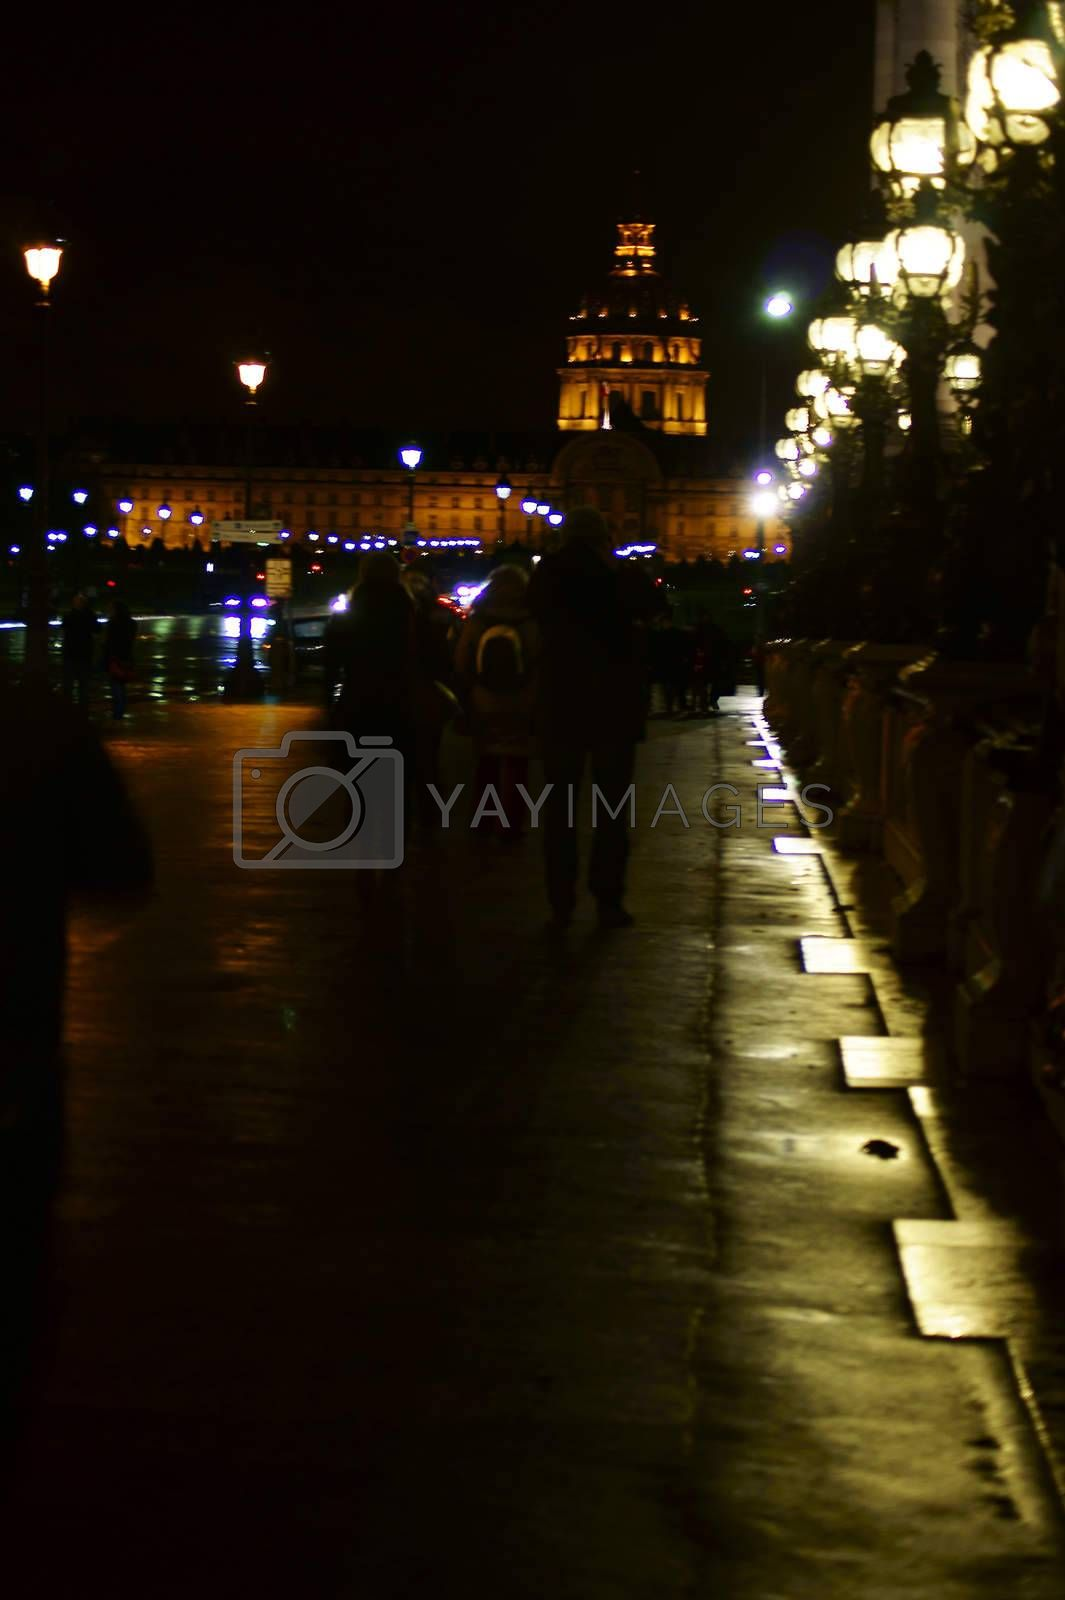 Paris, France - December 31, 2013: The Night Scene of a lighted sidewalk and a street in downtown Paris with the Invalides dome in the background on December 31, 2013 in Paris.